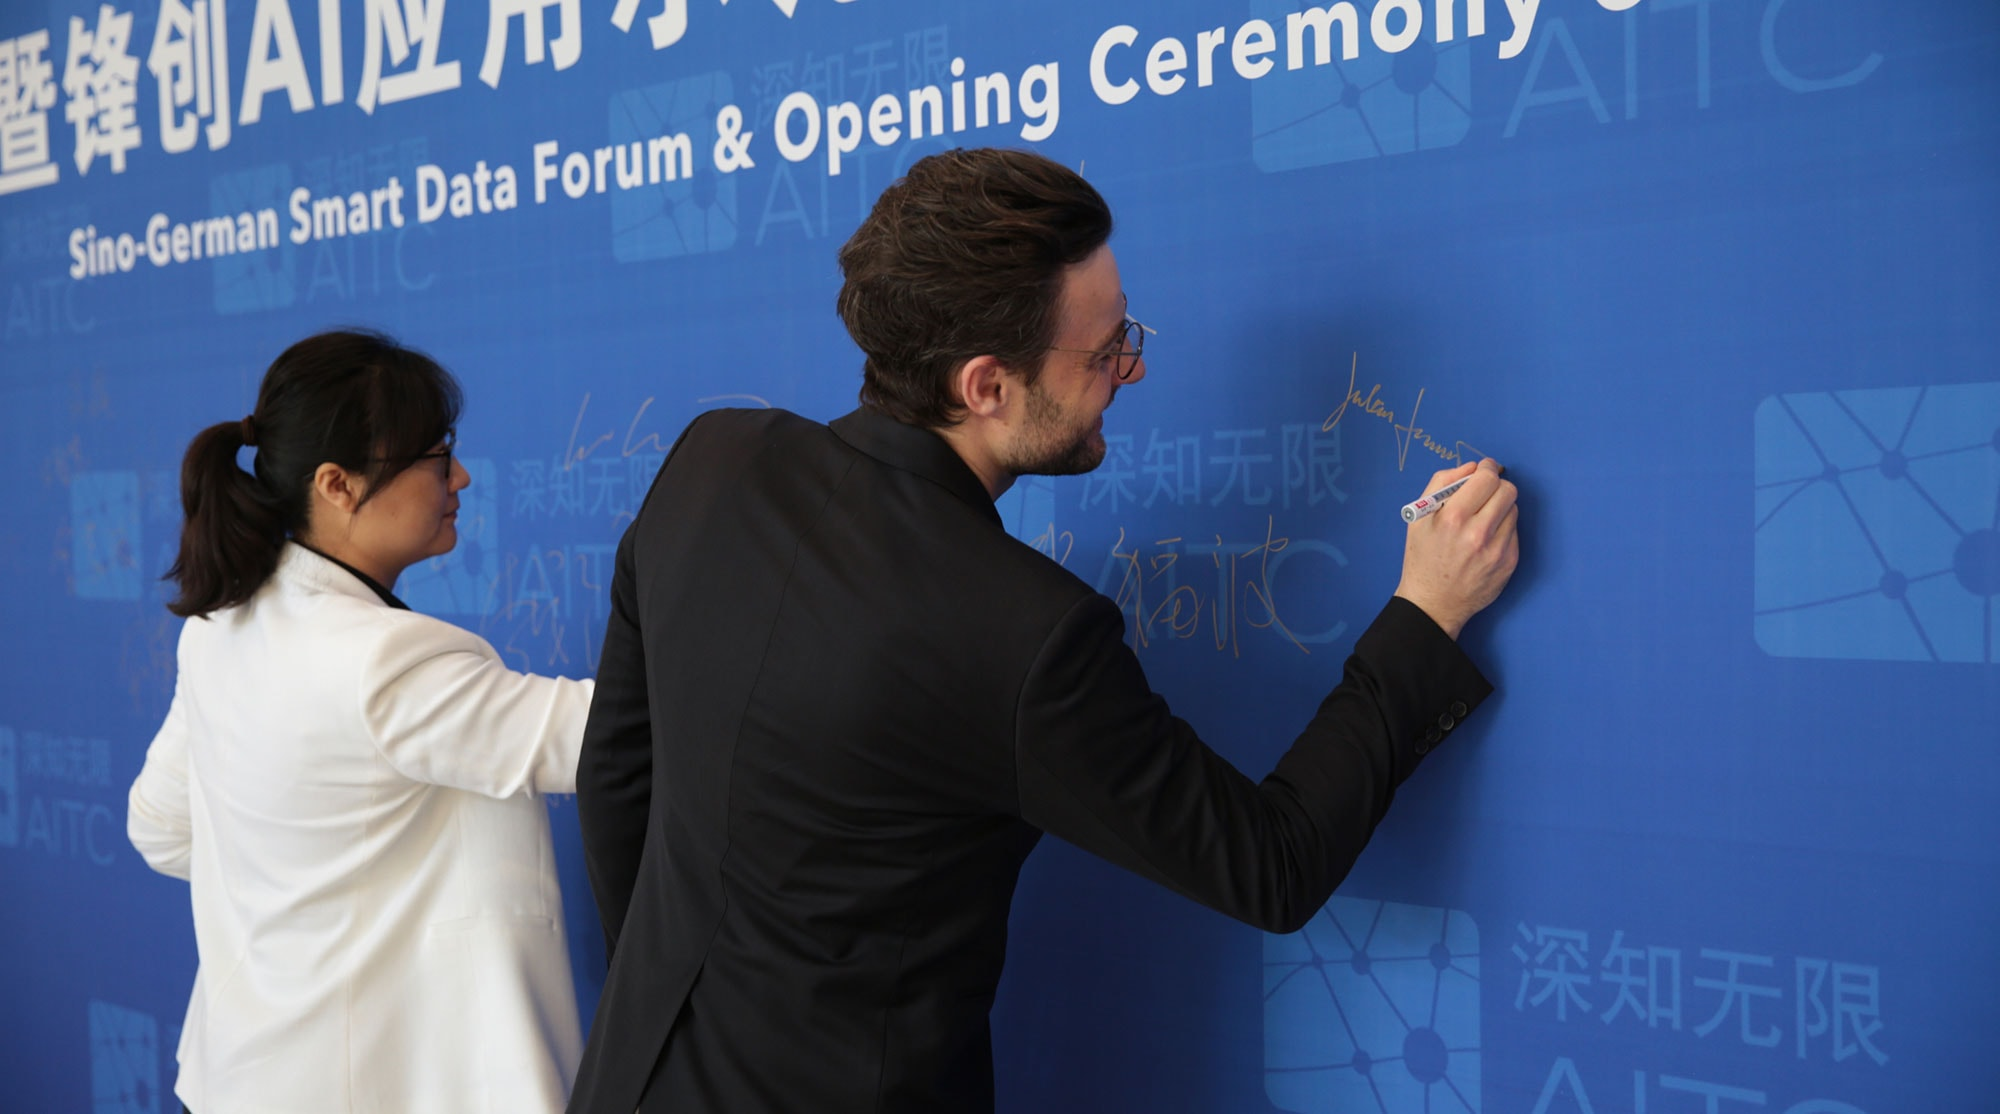 Yuan Huijin and Julian Masuhr sign wall of AI research event